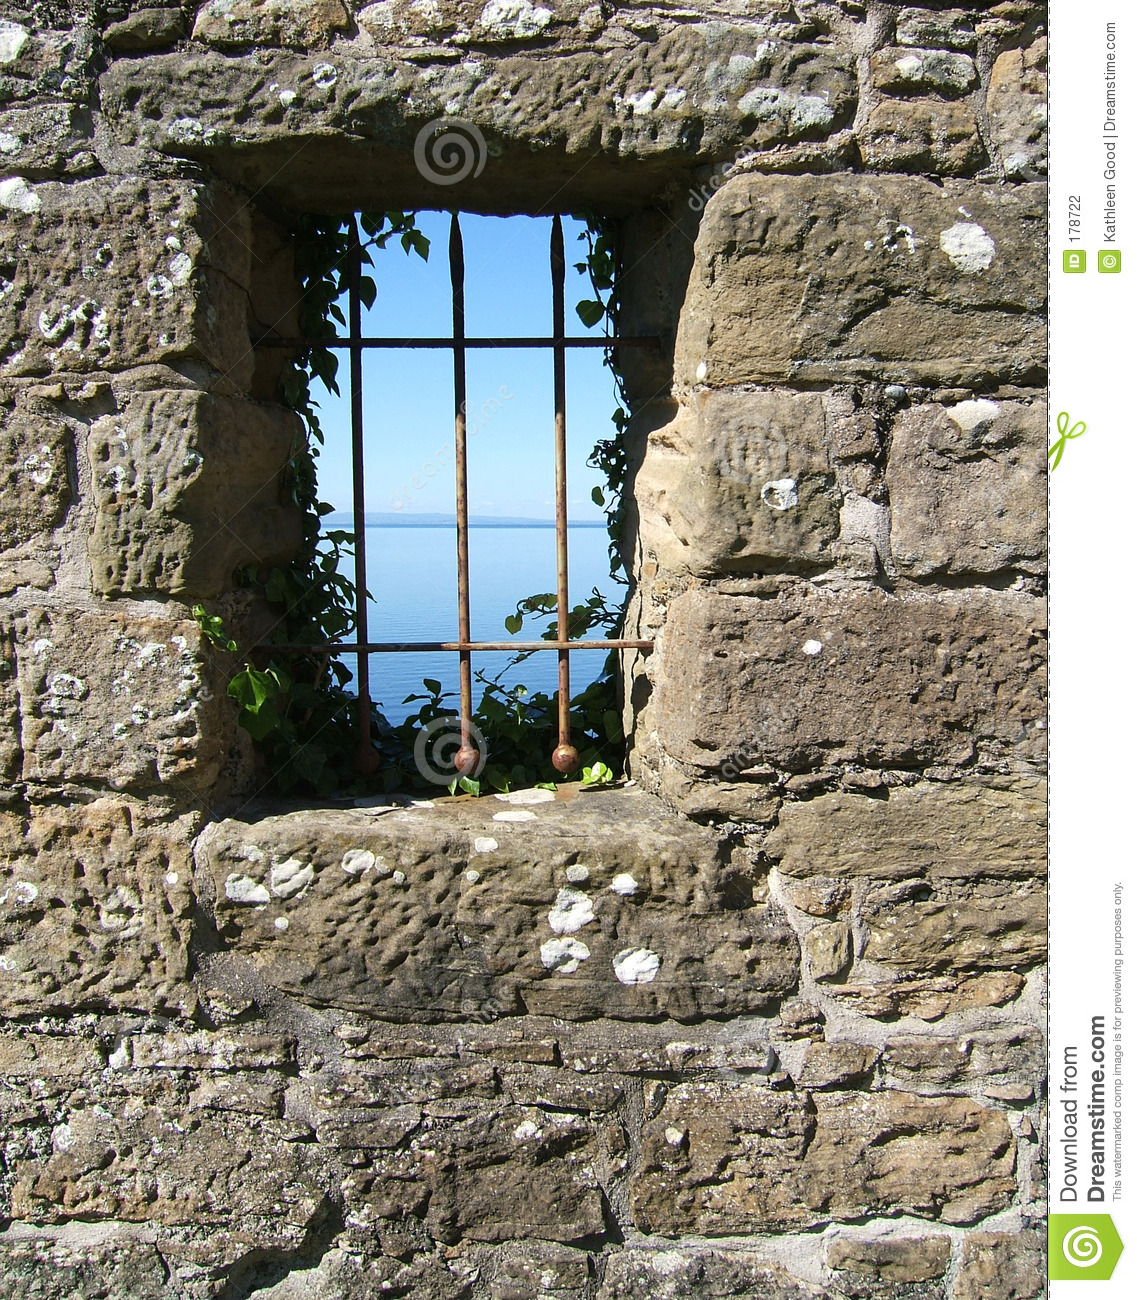 View from a castle window